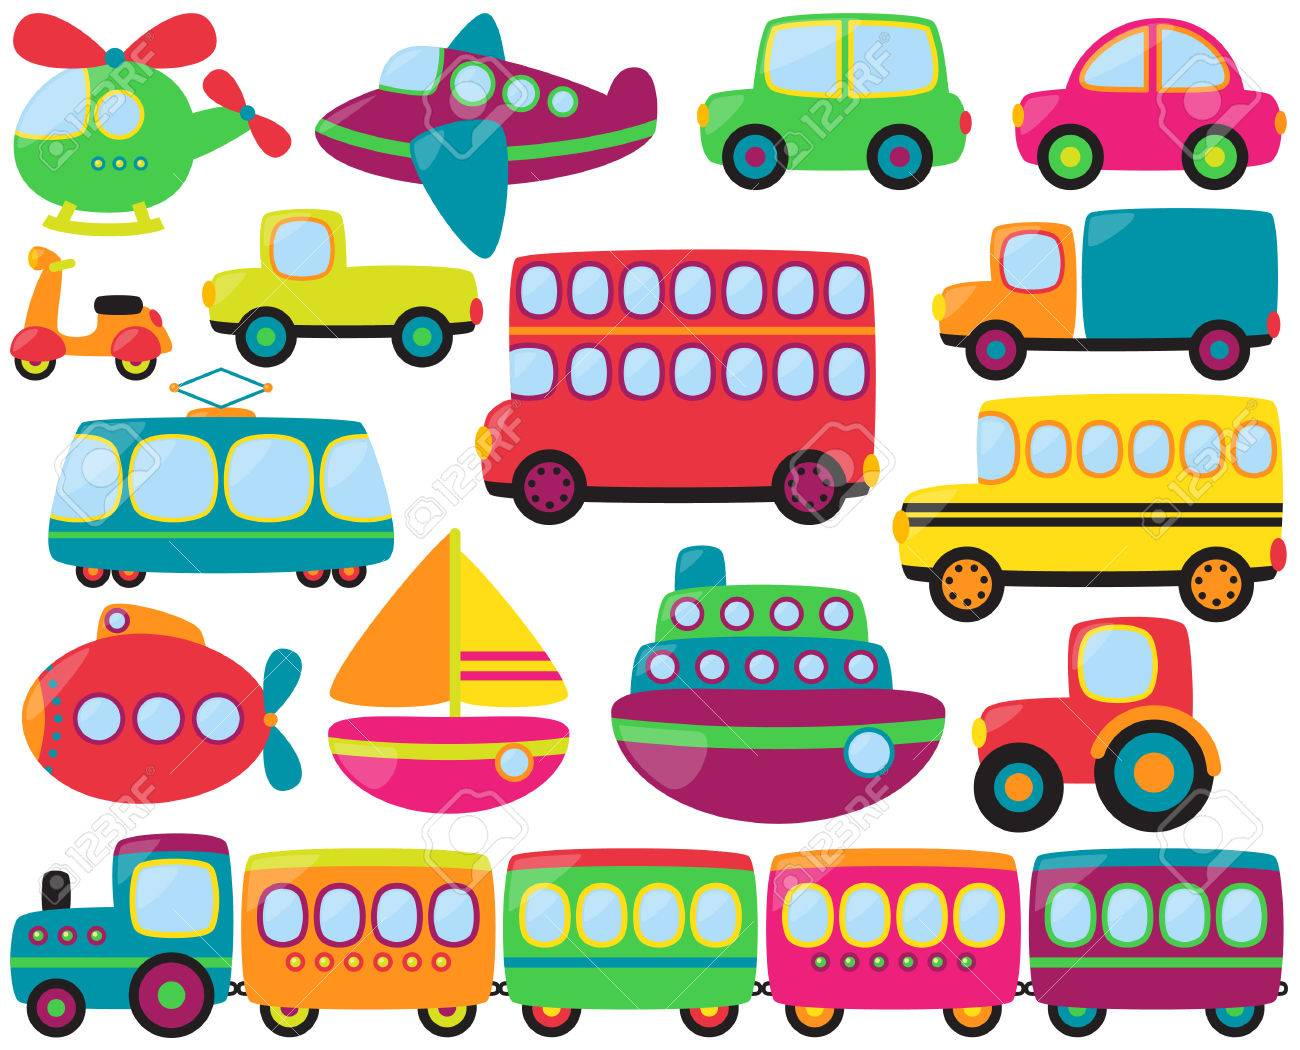 Cute Vector Collection of Transportation Vehicles.